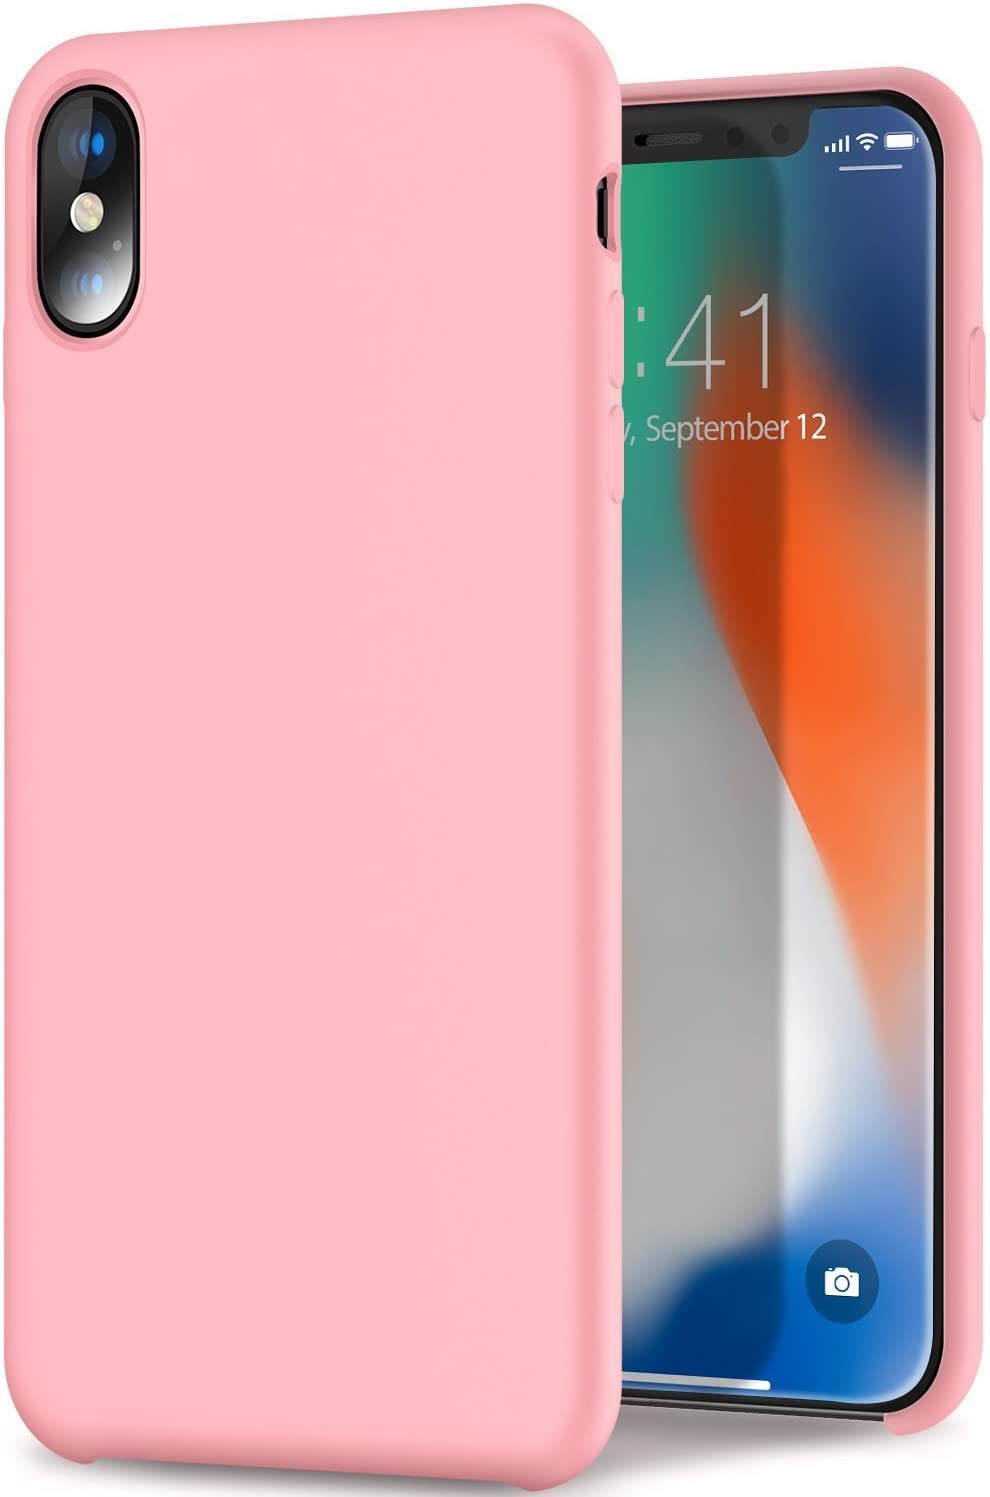 Imikoko iPhone Xs case, iPhone X case Liquid Silicone Gel Rubber Case with Soft Microfiber Cloth Lining Cushion Shockproof Bumper Cover for iPhone X (Pink)